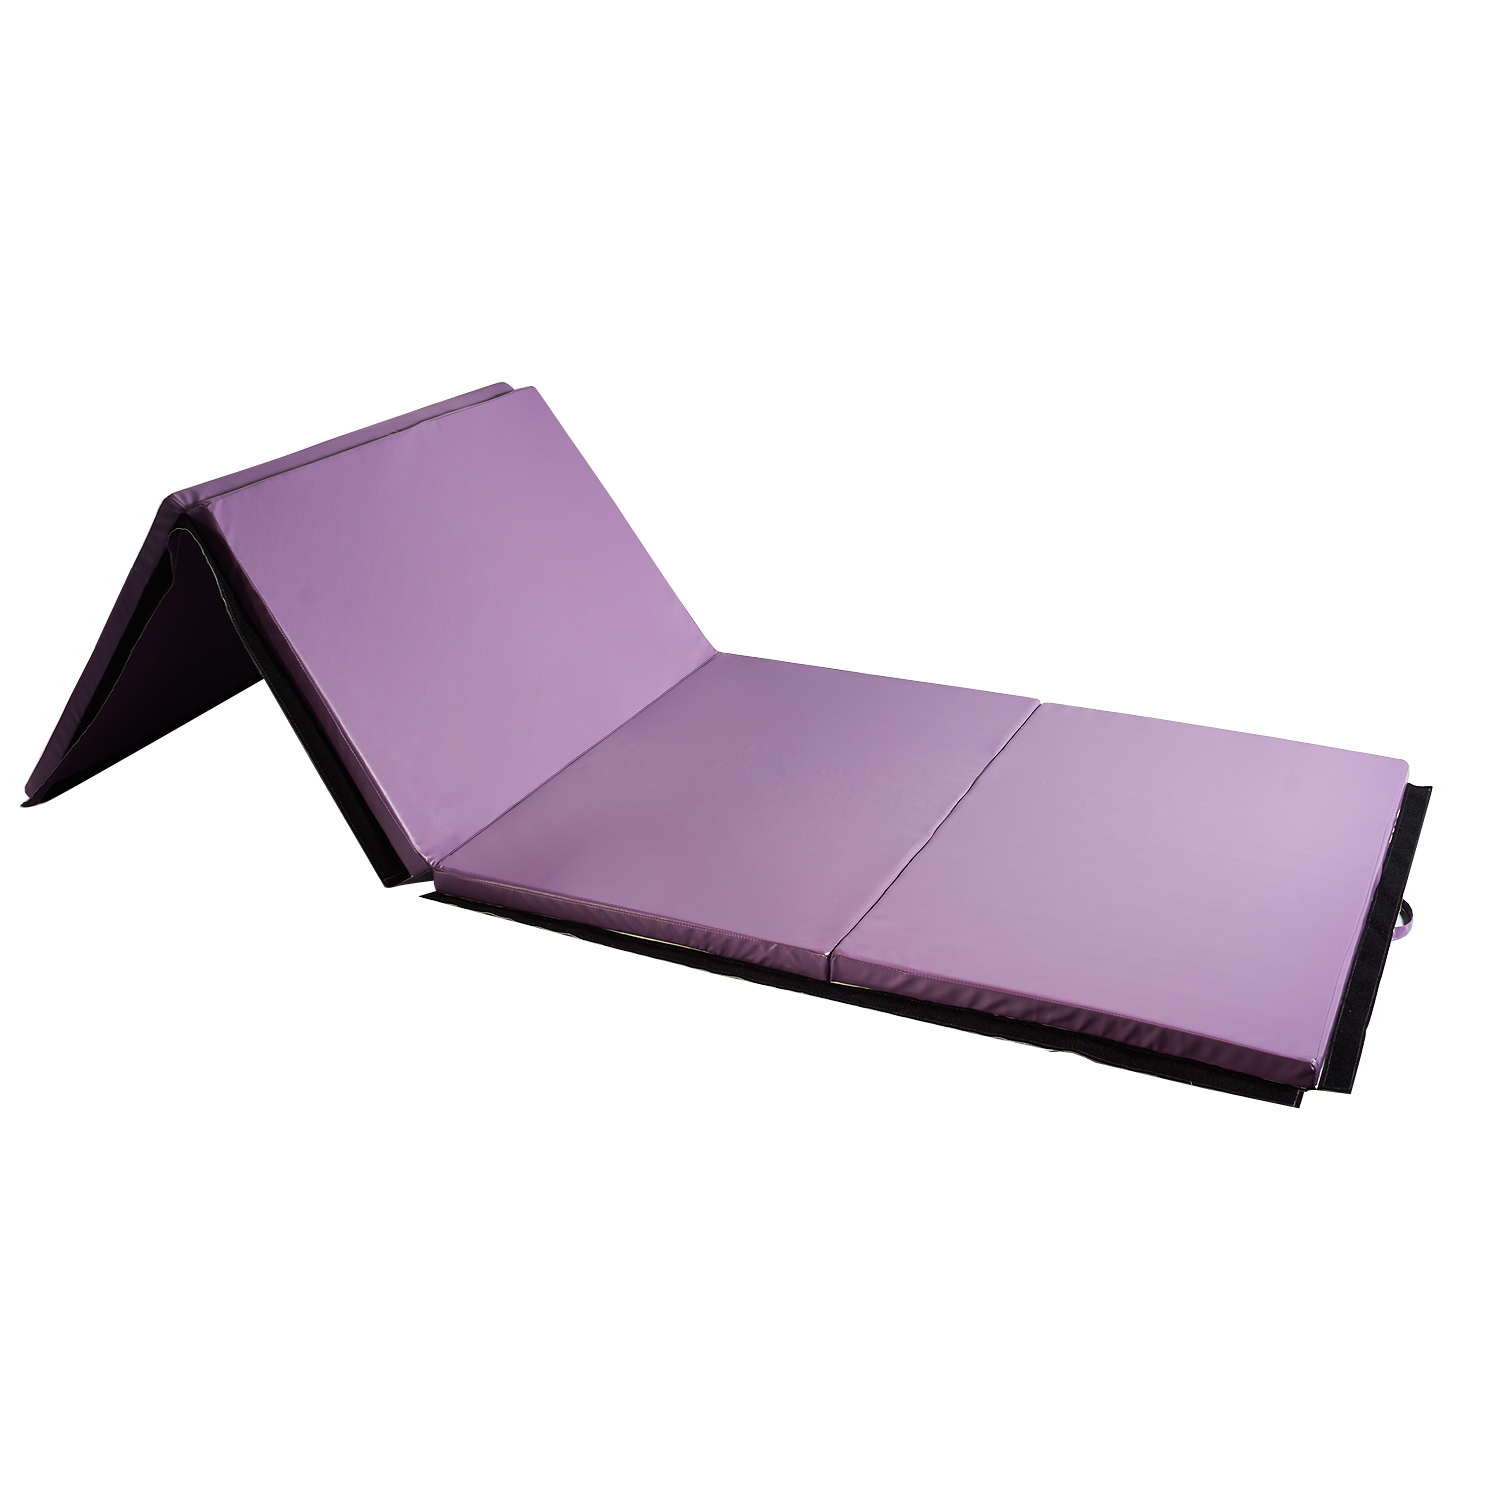 Ainfox 4 X10 X2 Gymnastics Gym Mat Folding Exercise